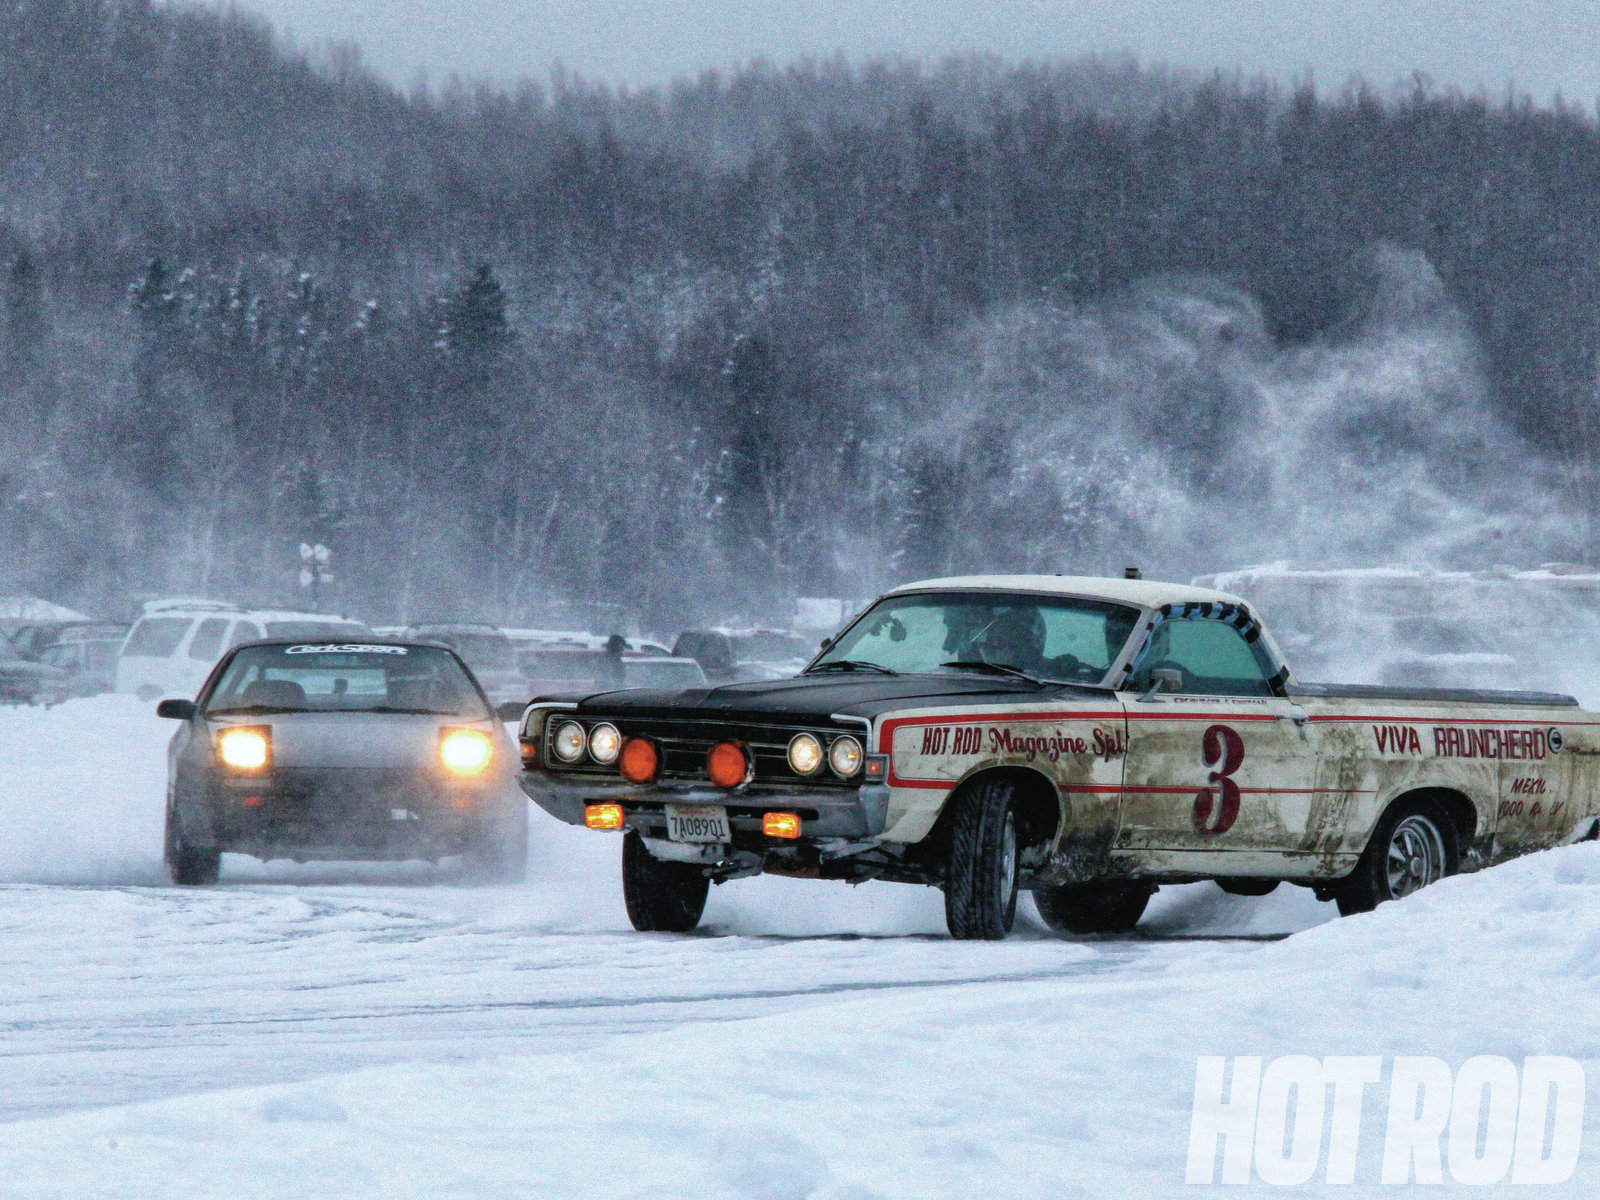 Finally, big thanks to the Alaska Sports Car Club (established in 1958) for hosting us at the ice races on Big Lake. The crew was amazingly accommodating to a couple Californians in a stupid car that had no business being there. Hot Rod